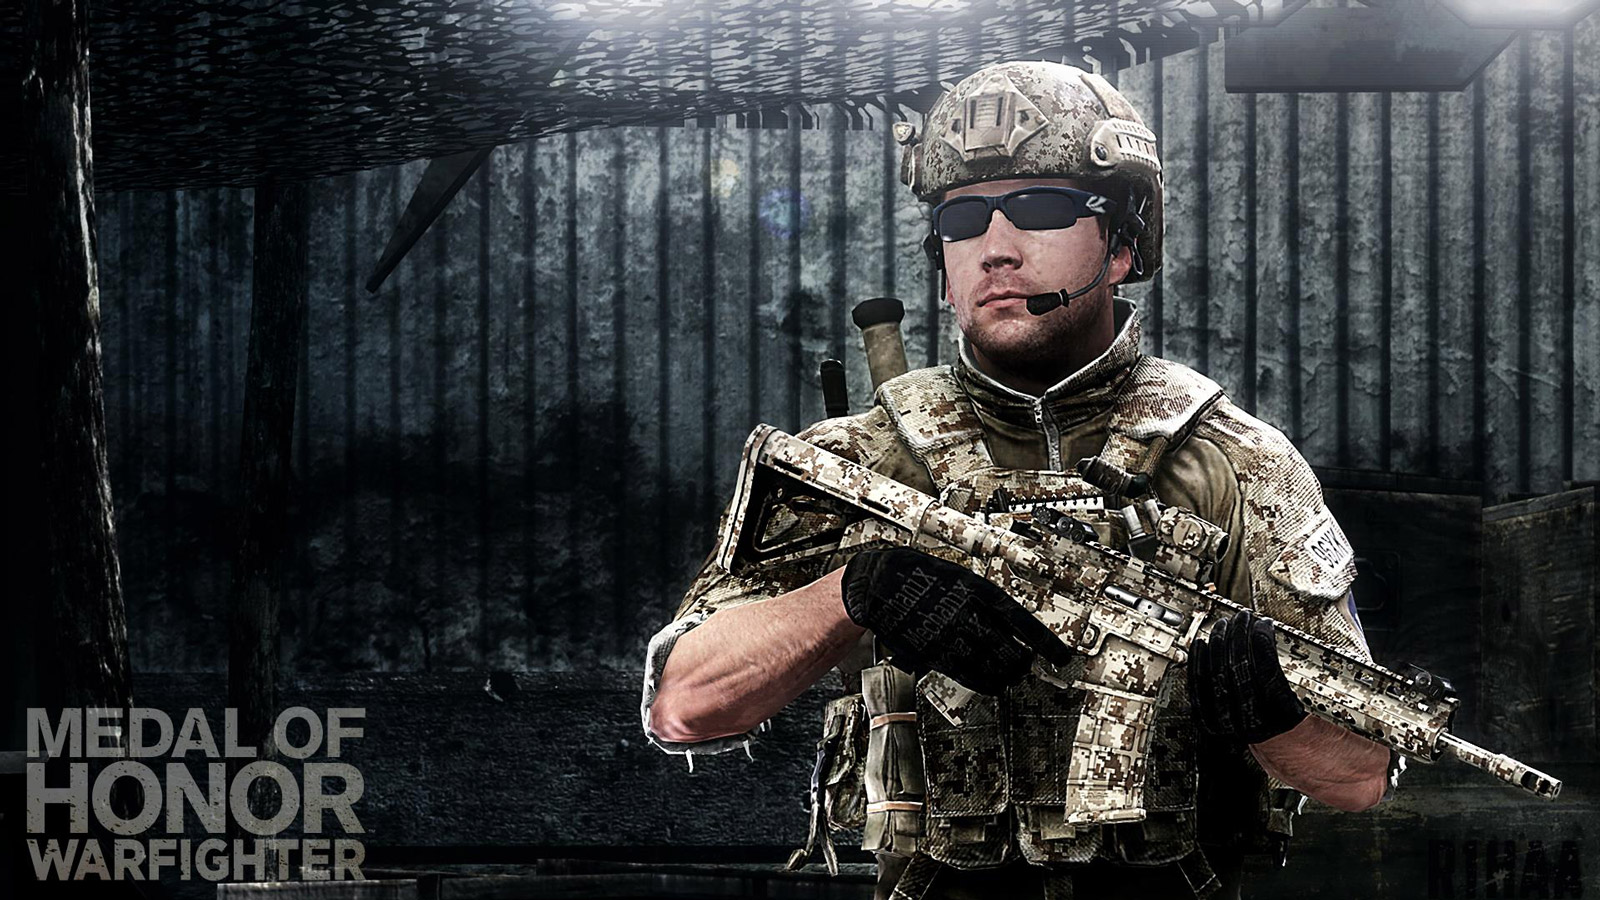 Free Medal of Honor: Warfighter Wallpaper in 1600x900